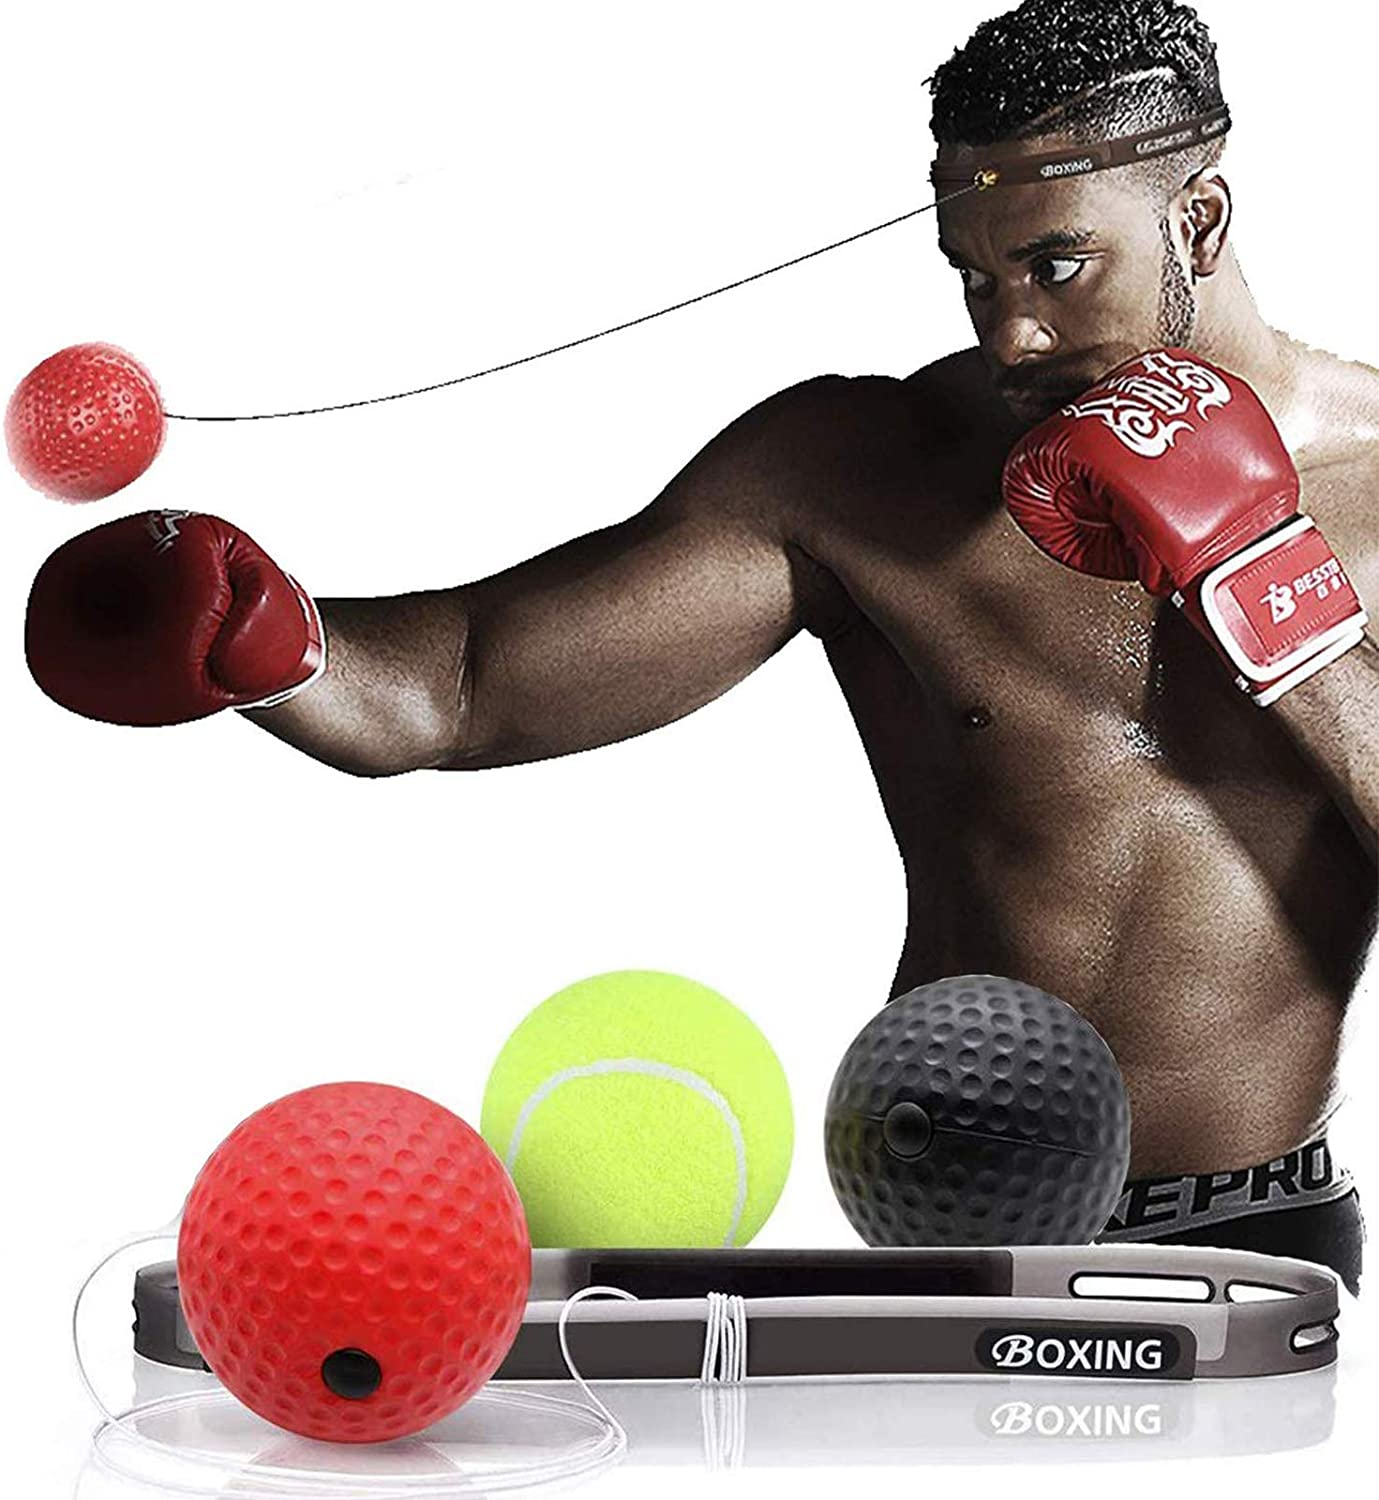 Funpkin Boxing Reflex Ball - 3 Difficulty Level Reaction Balls with Headband, Fight Ball for Improve Speed Reactions and Hand Eye Coordination, Home Sports for Boxing, Combat Sports Training, Fitness